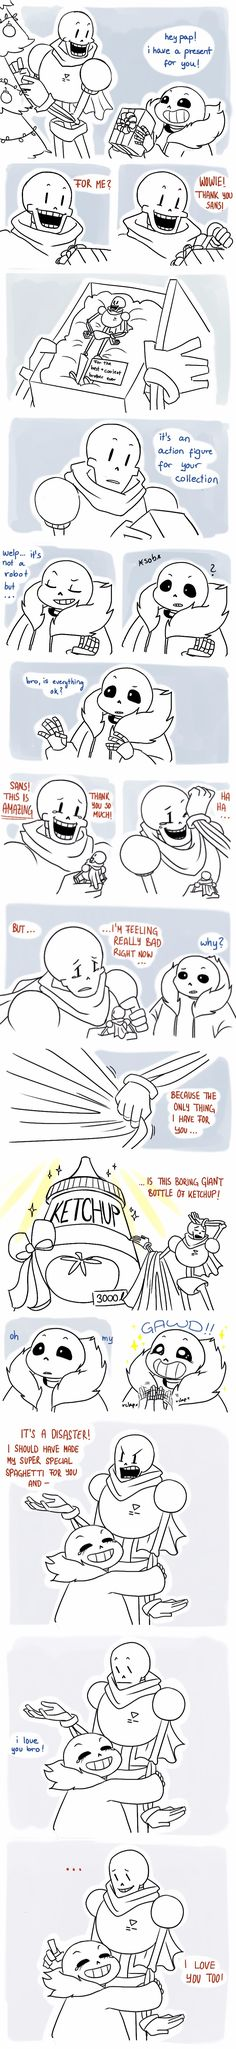 Sans and Papyrus - comic - Christmas